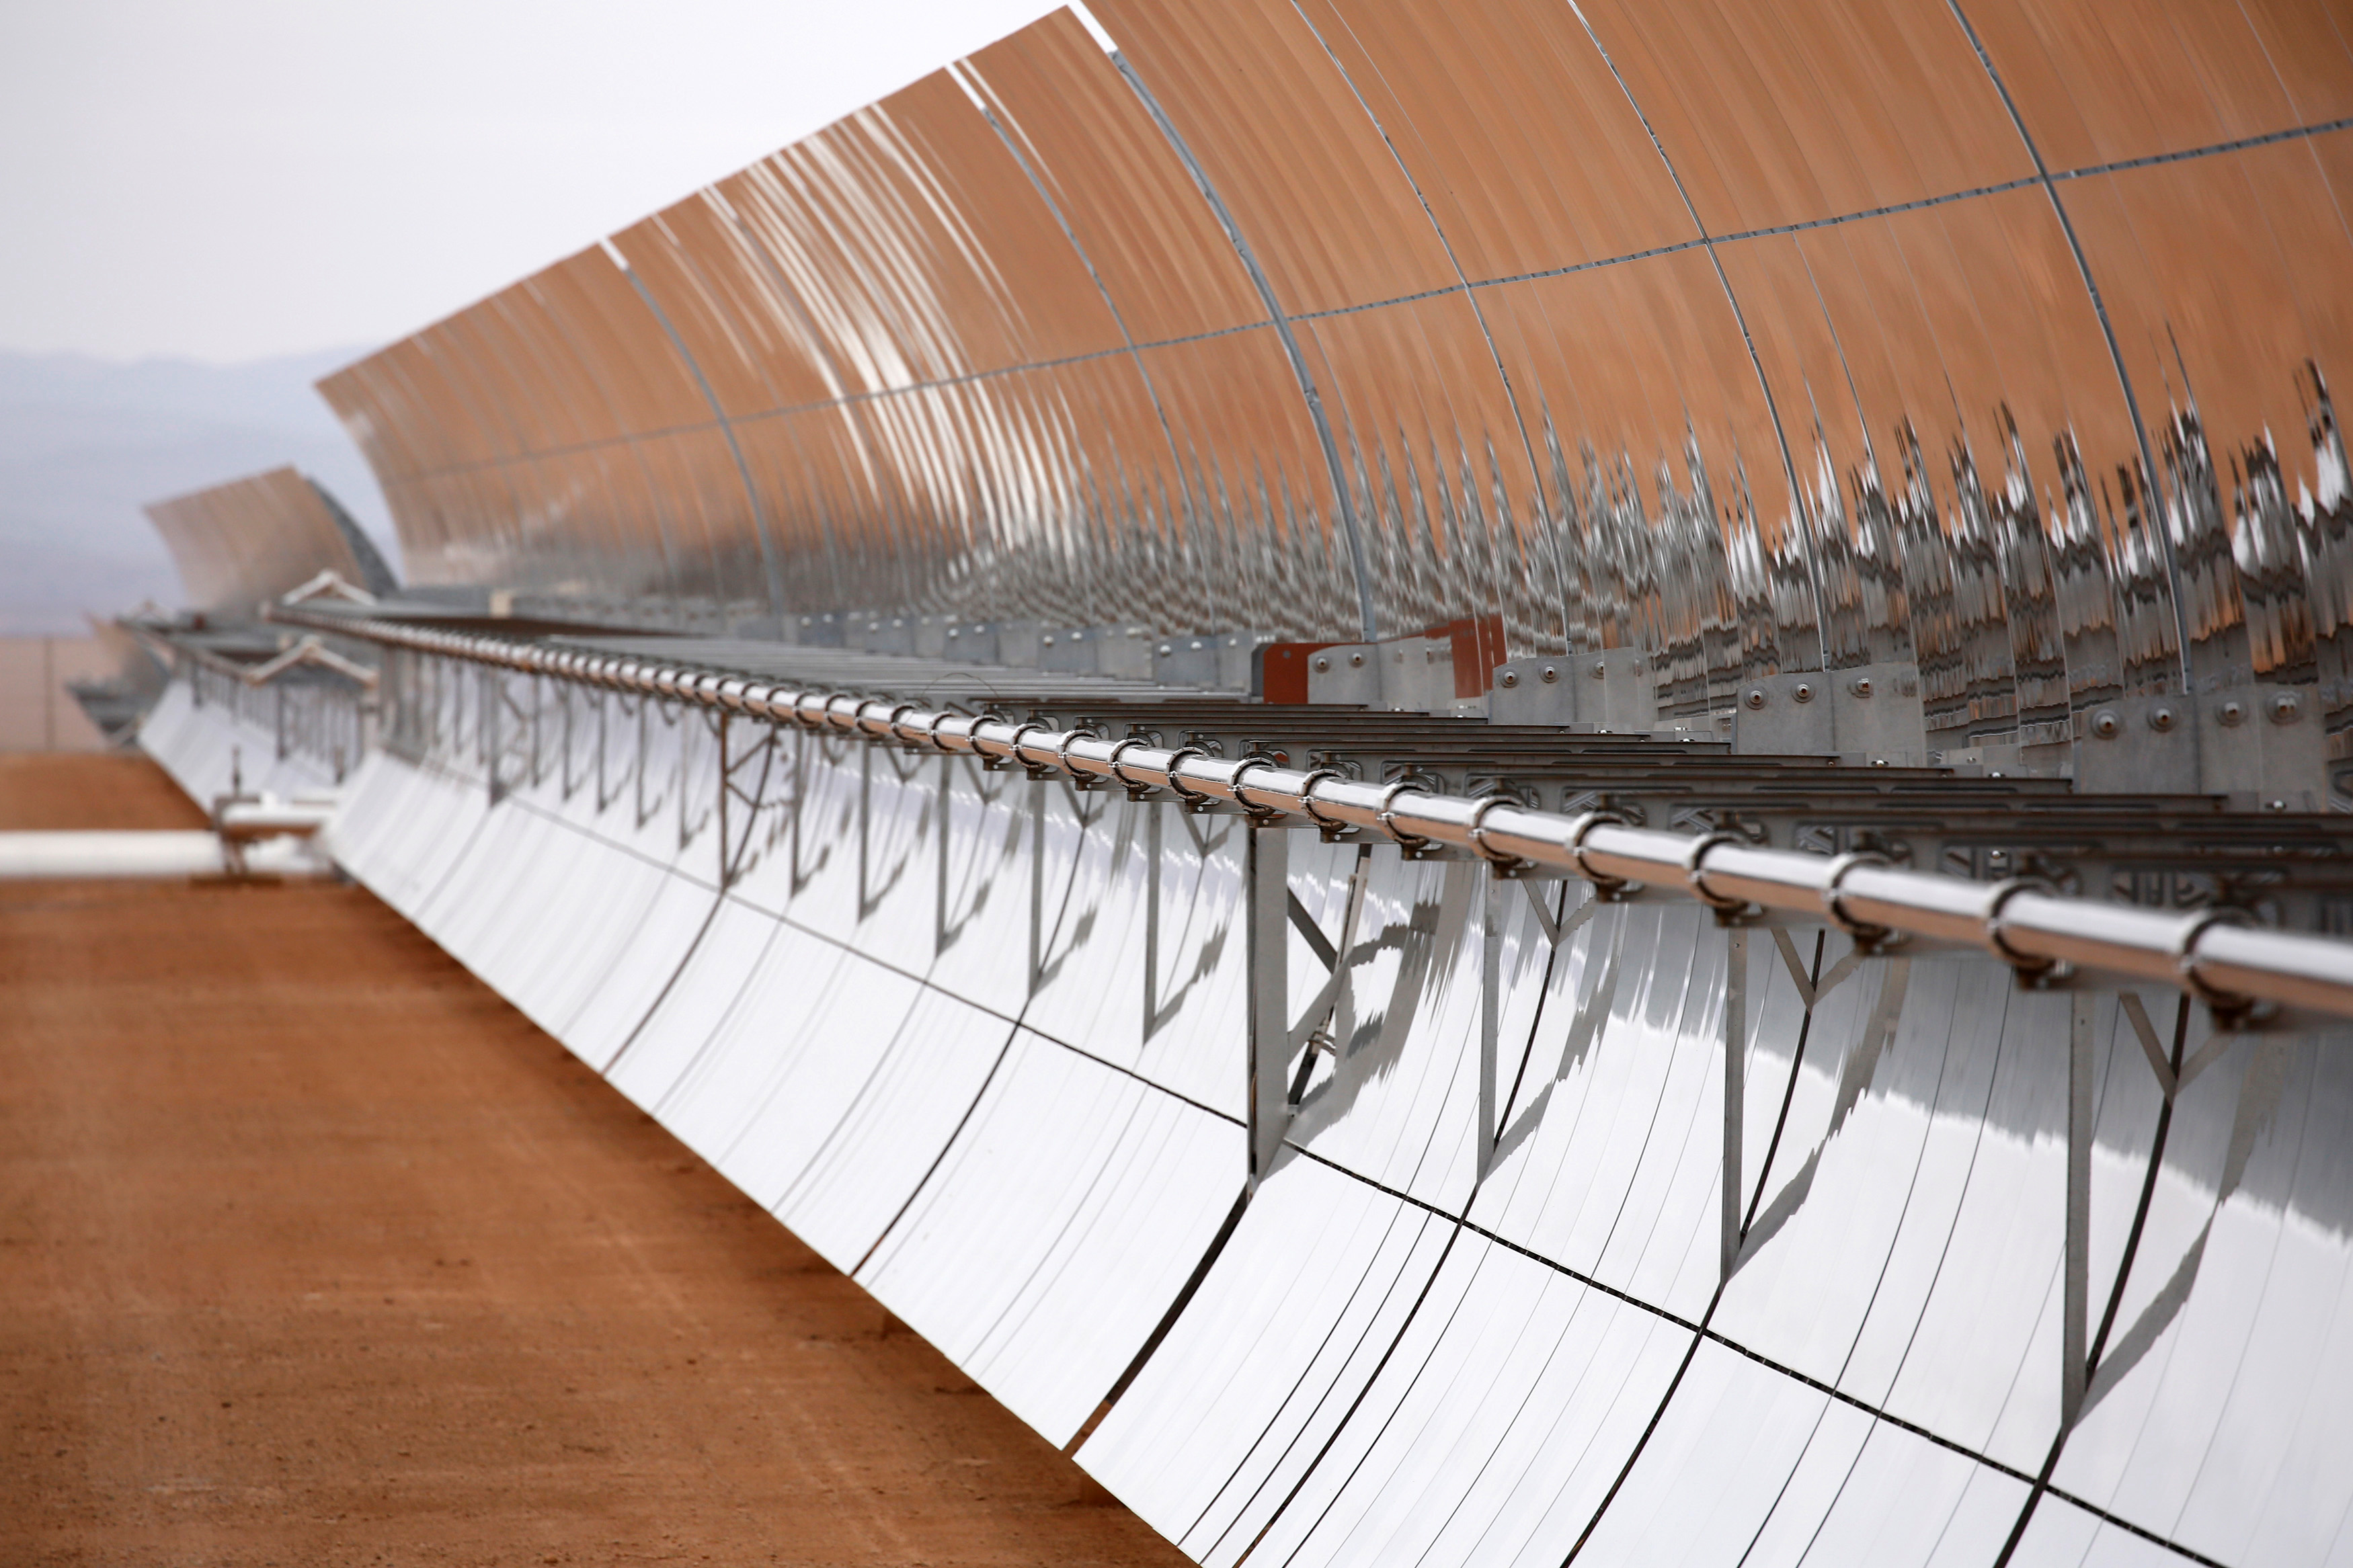 The concentrated solar power (CSP) technology at Morocco's NOOR plant uses thousands of curved mirrors like these to focus the sun's heat on tubes carrying a molten salt solution, heating the liquid up to roughly 700 degrees Fahrenheit. That heat is then